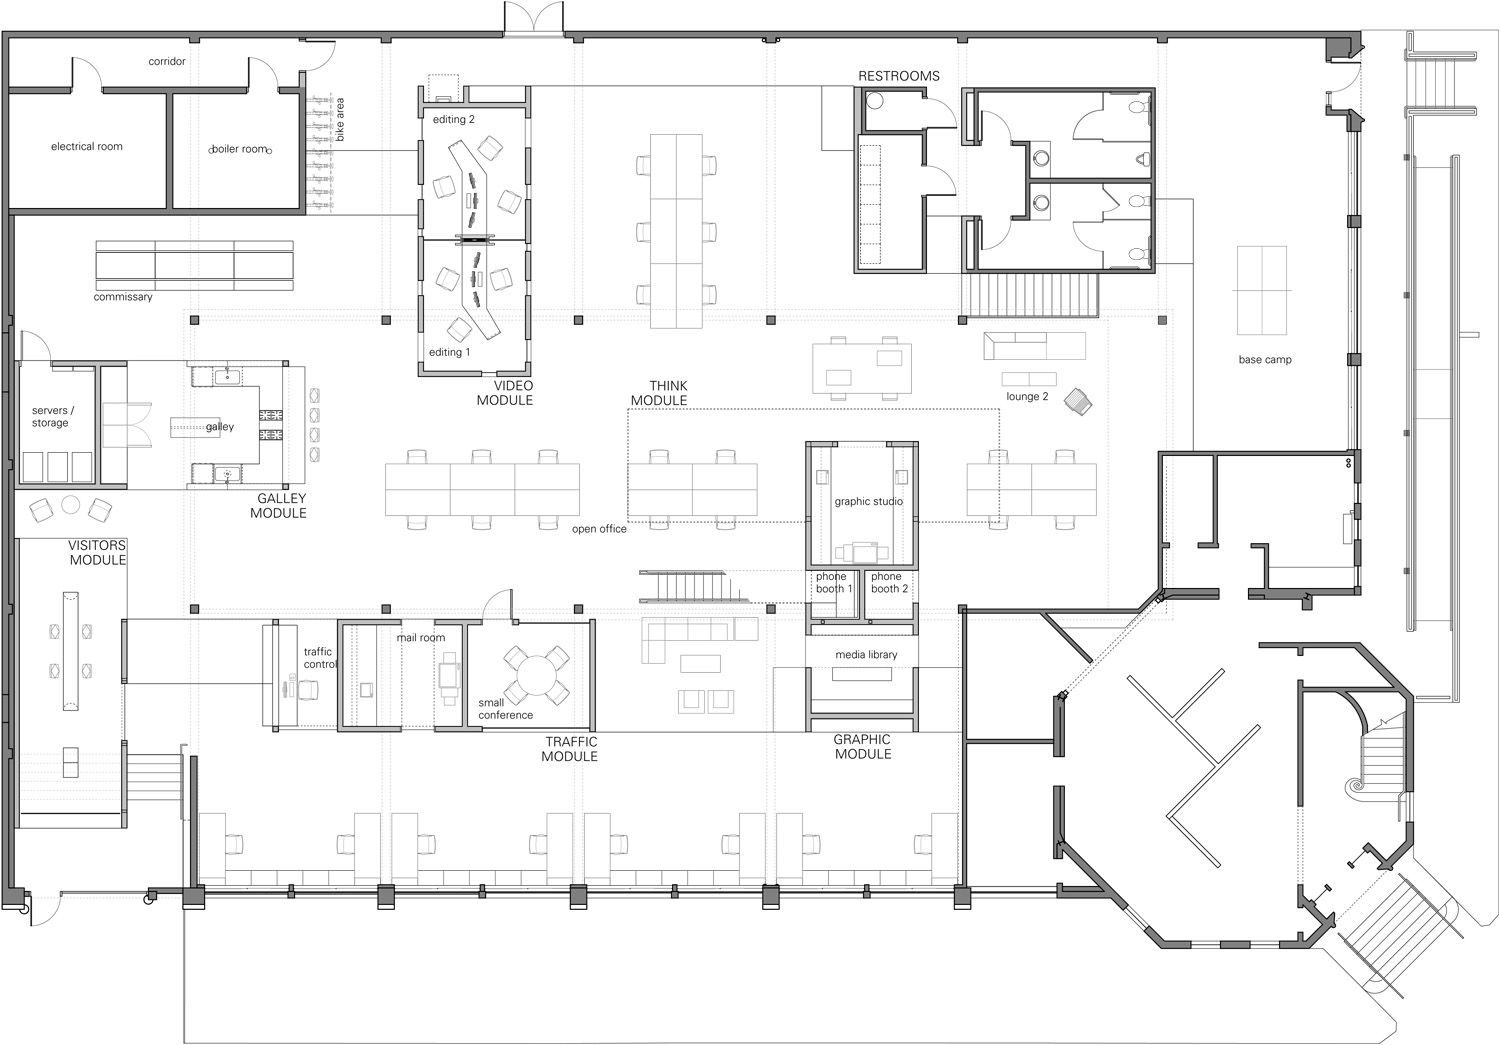 North skylab architecture office floor plan office for Interior design space planning guidelines